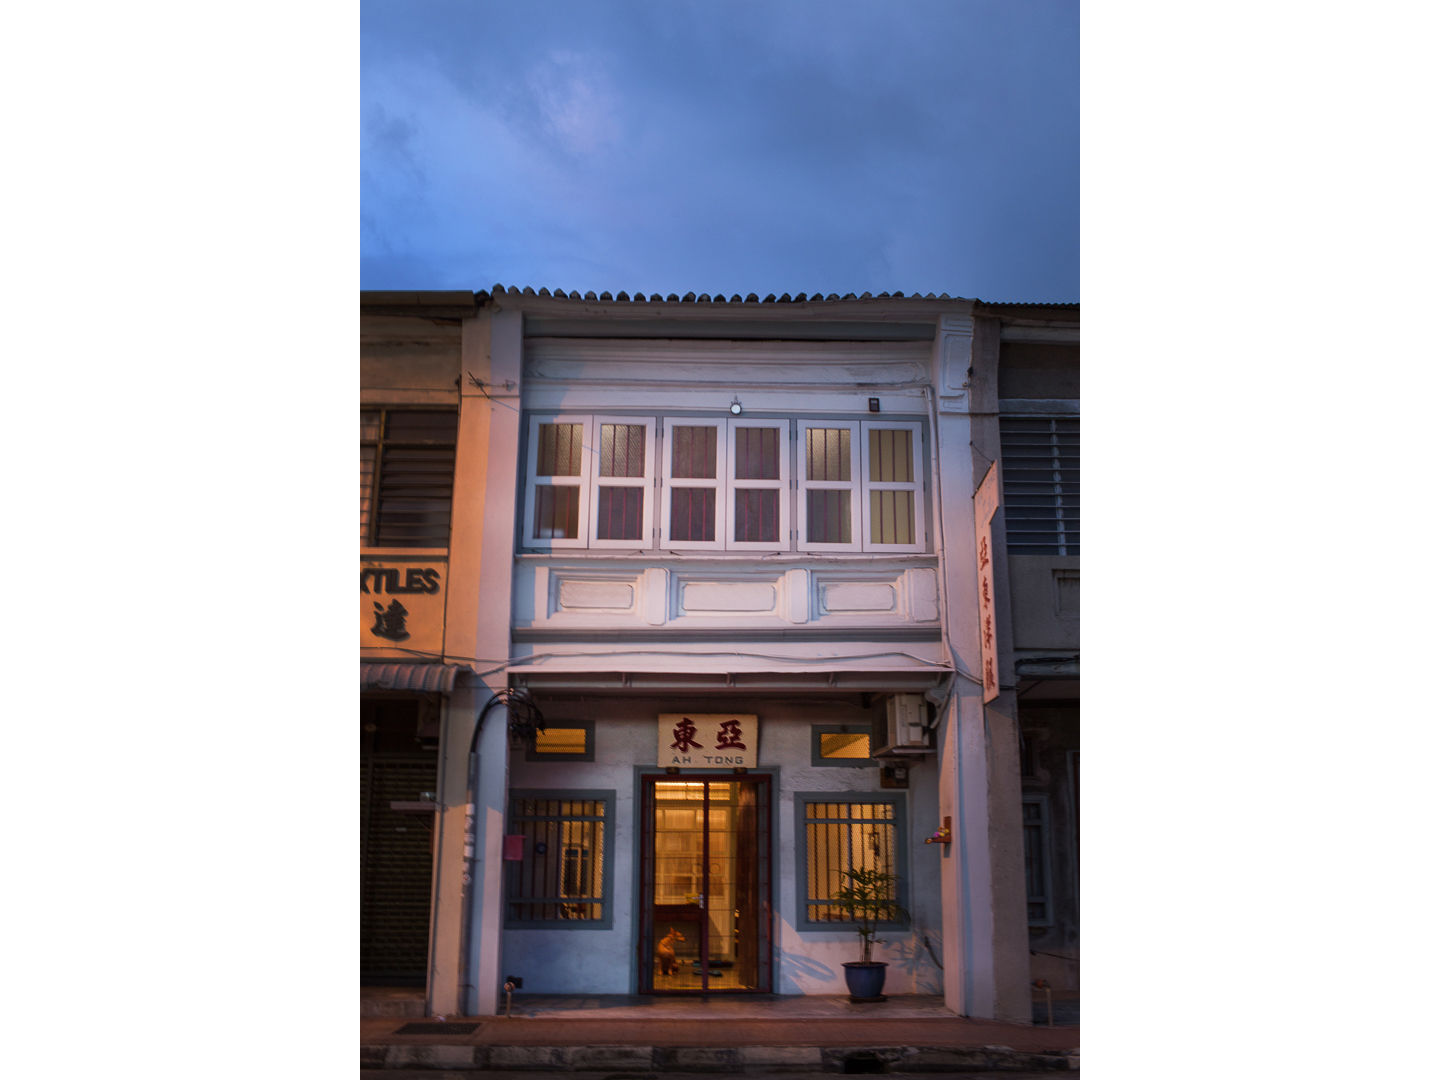 Penang-heritage-house-for-sale-facade-evening